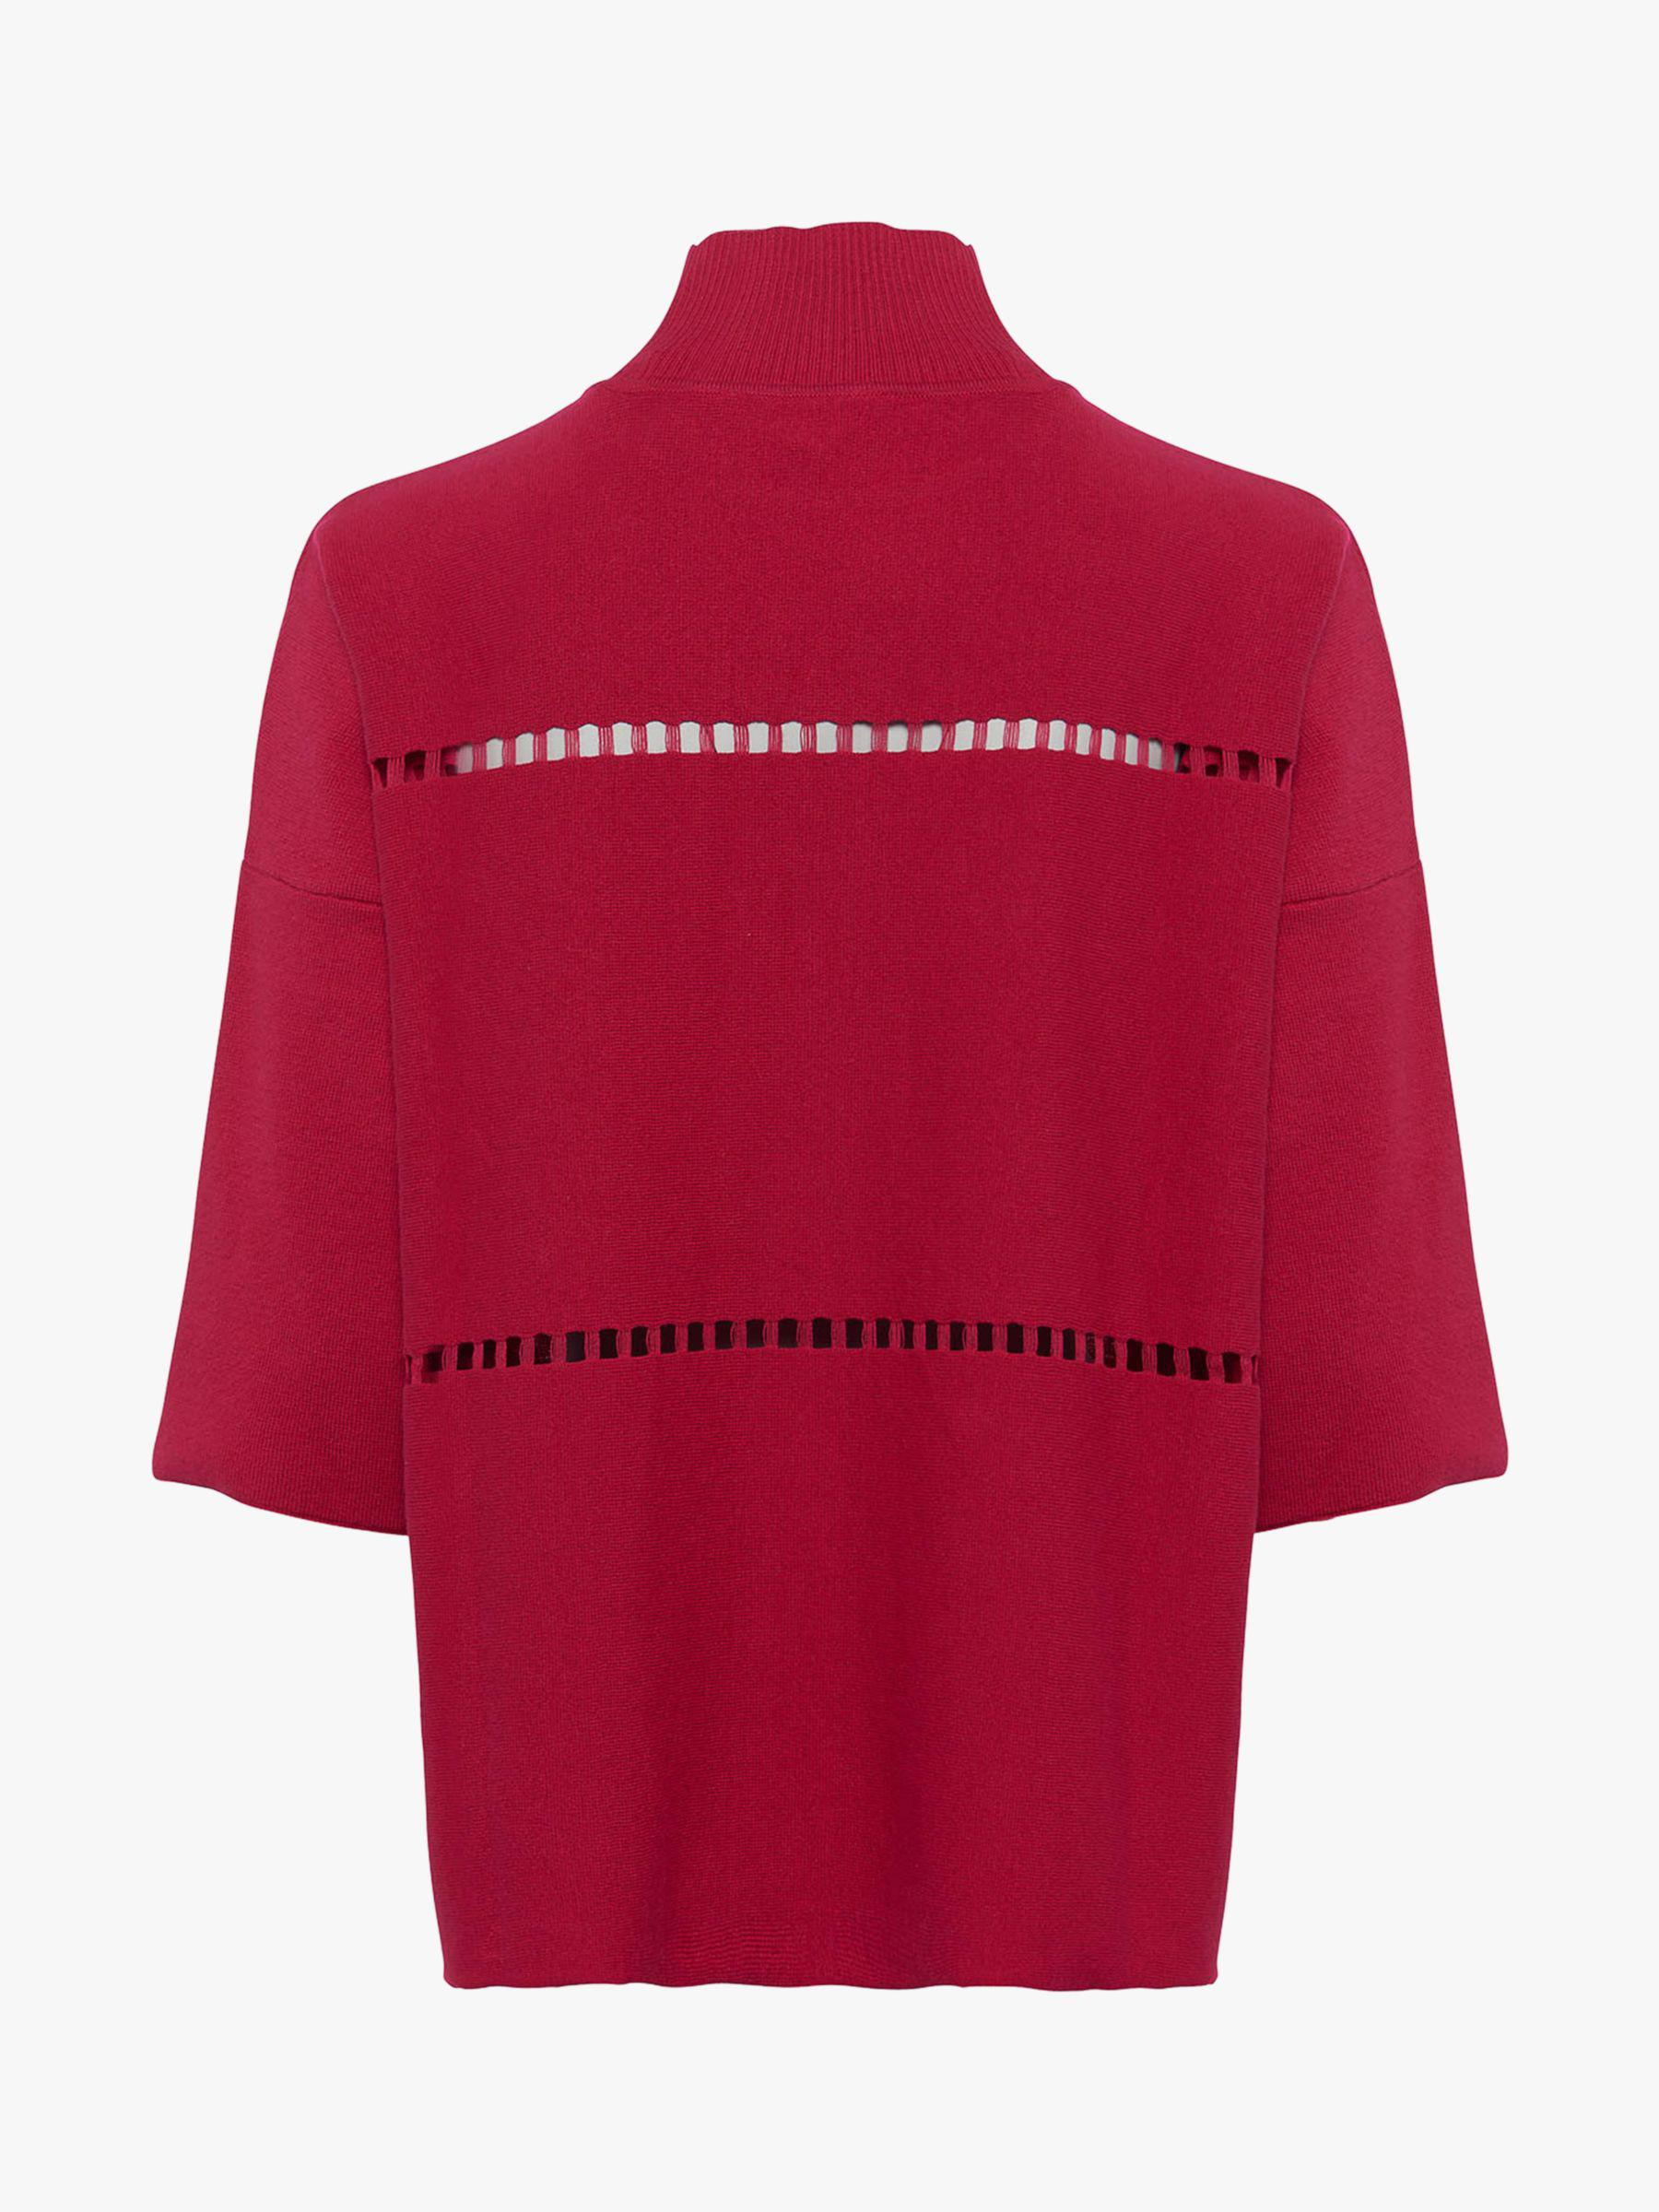 8cbb015928b French Connection Milano High Neck Jumper in Red - Lyst